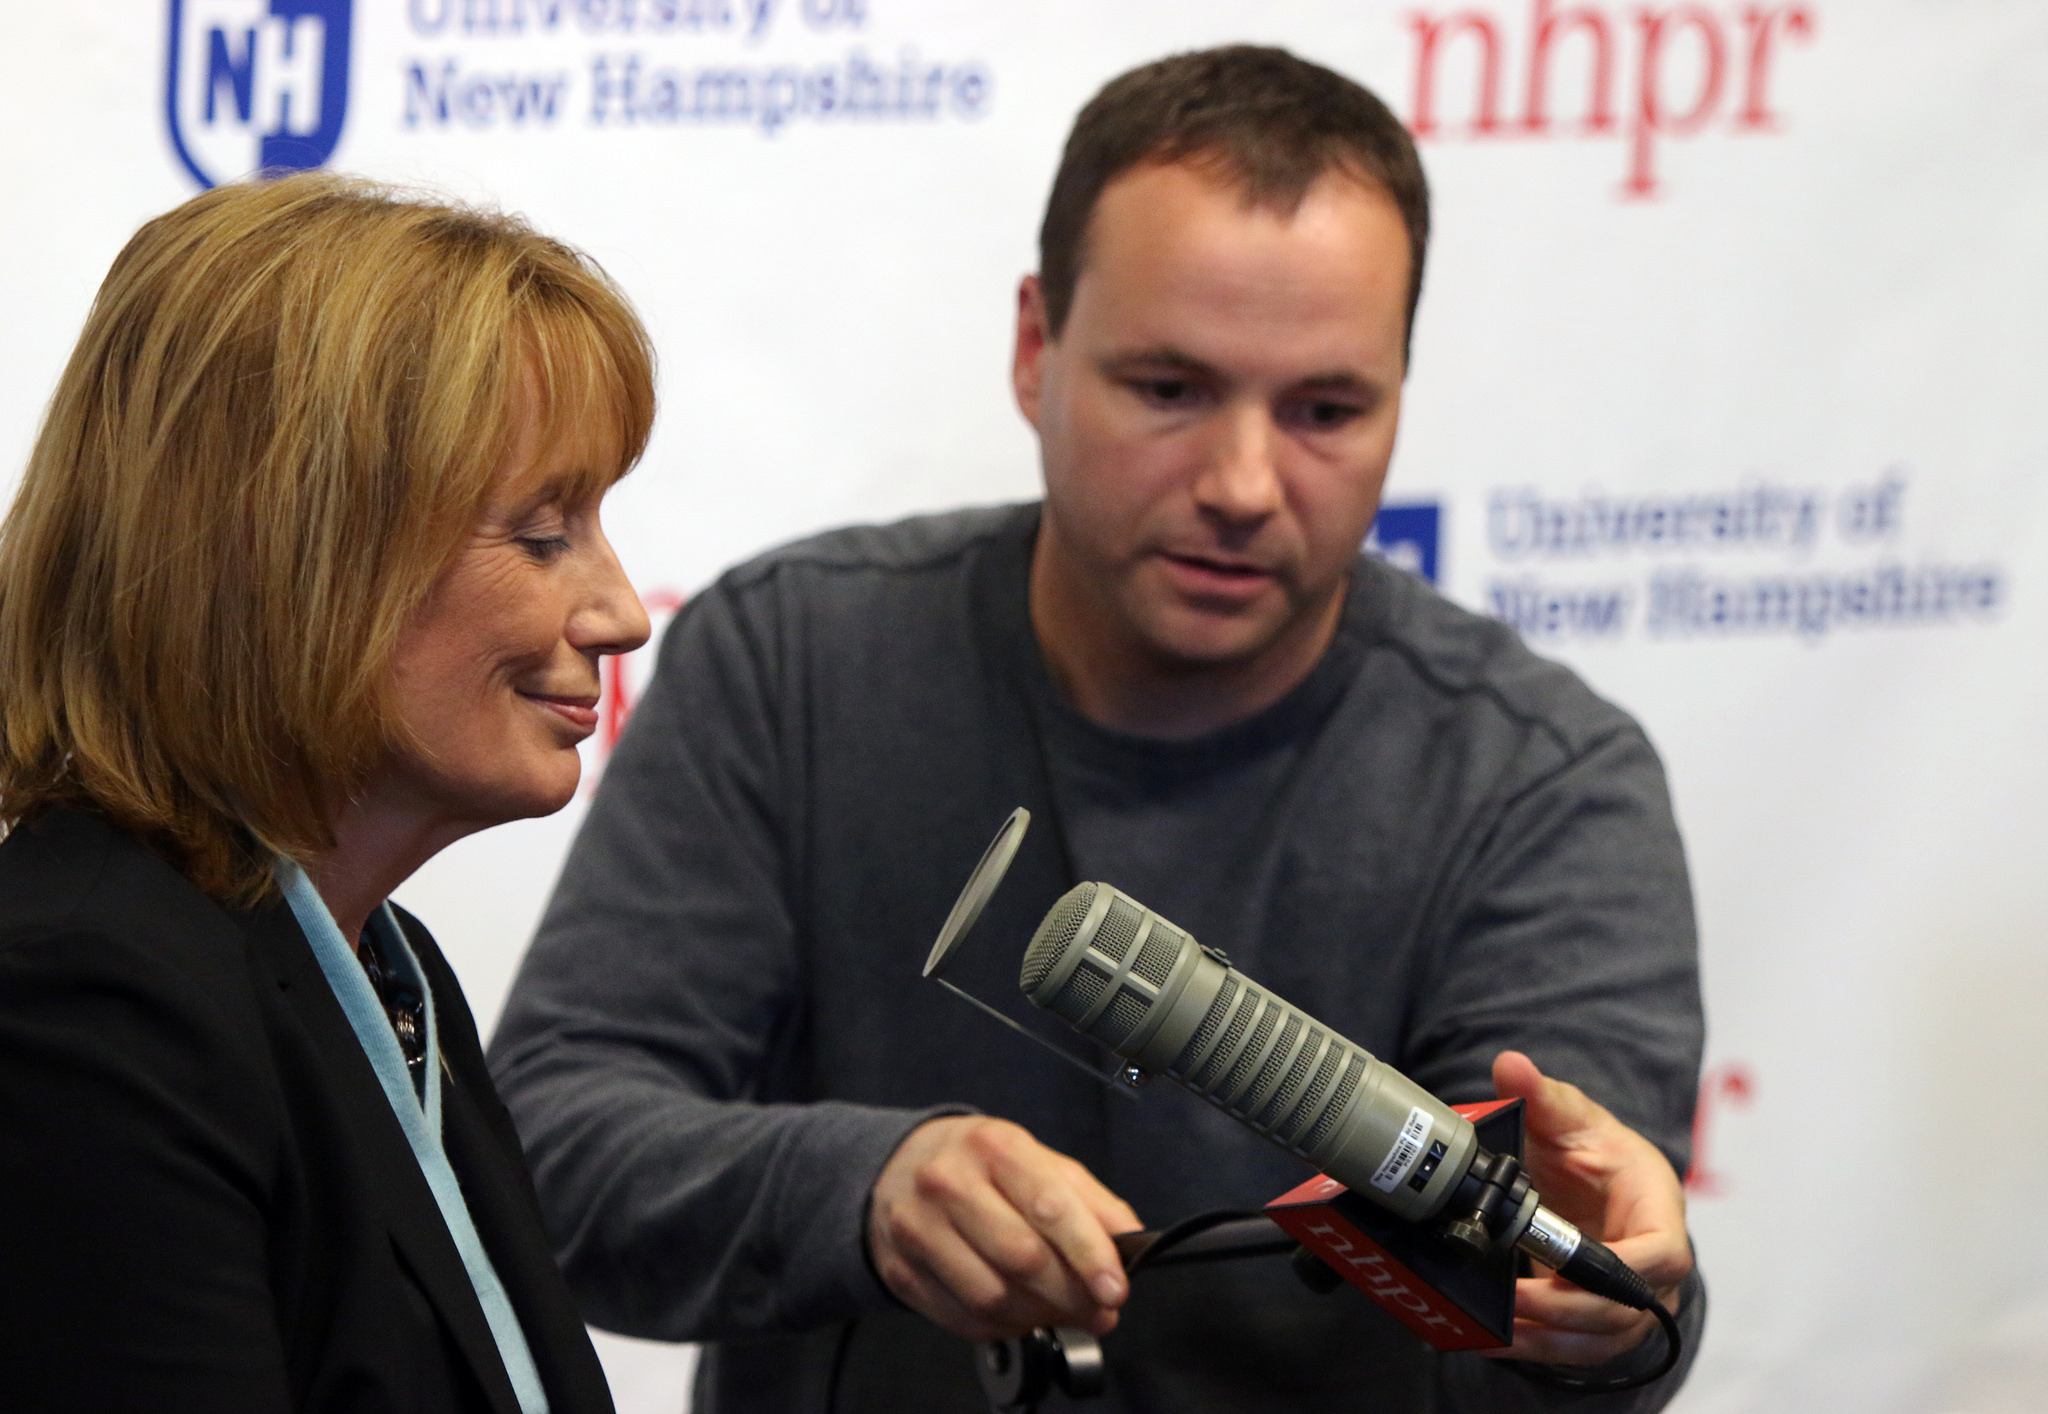 Governor Maggie Hassan gets a sound check before a live conversation with Laura Knoy at the Rudman Center, 2014